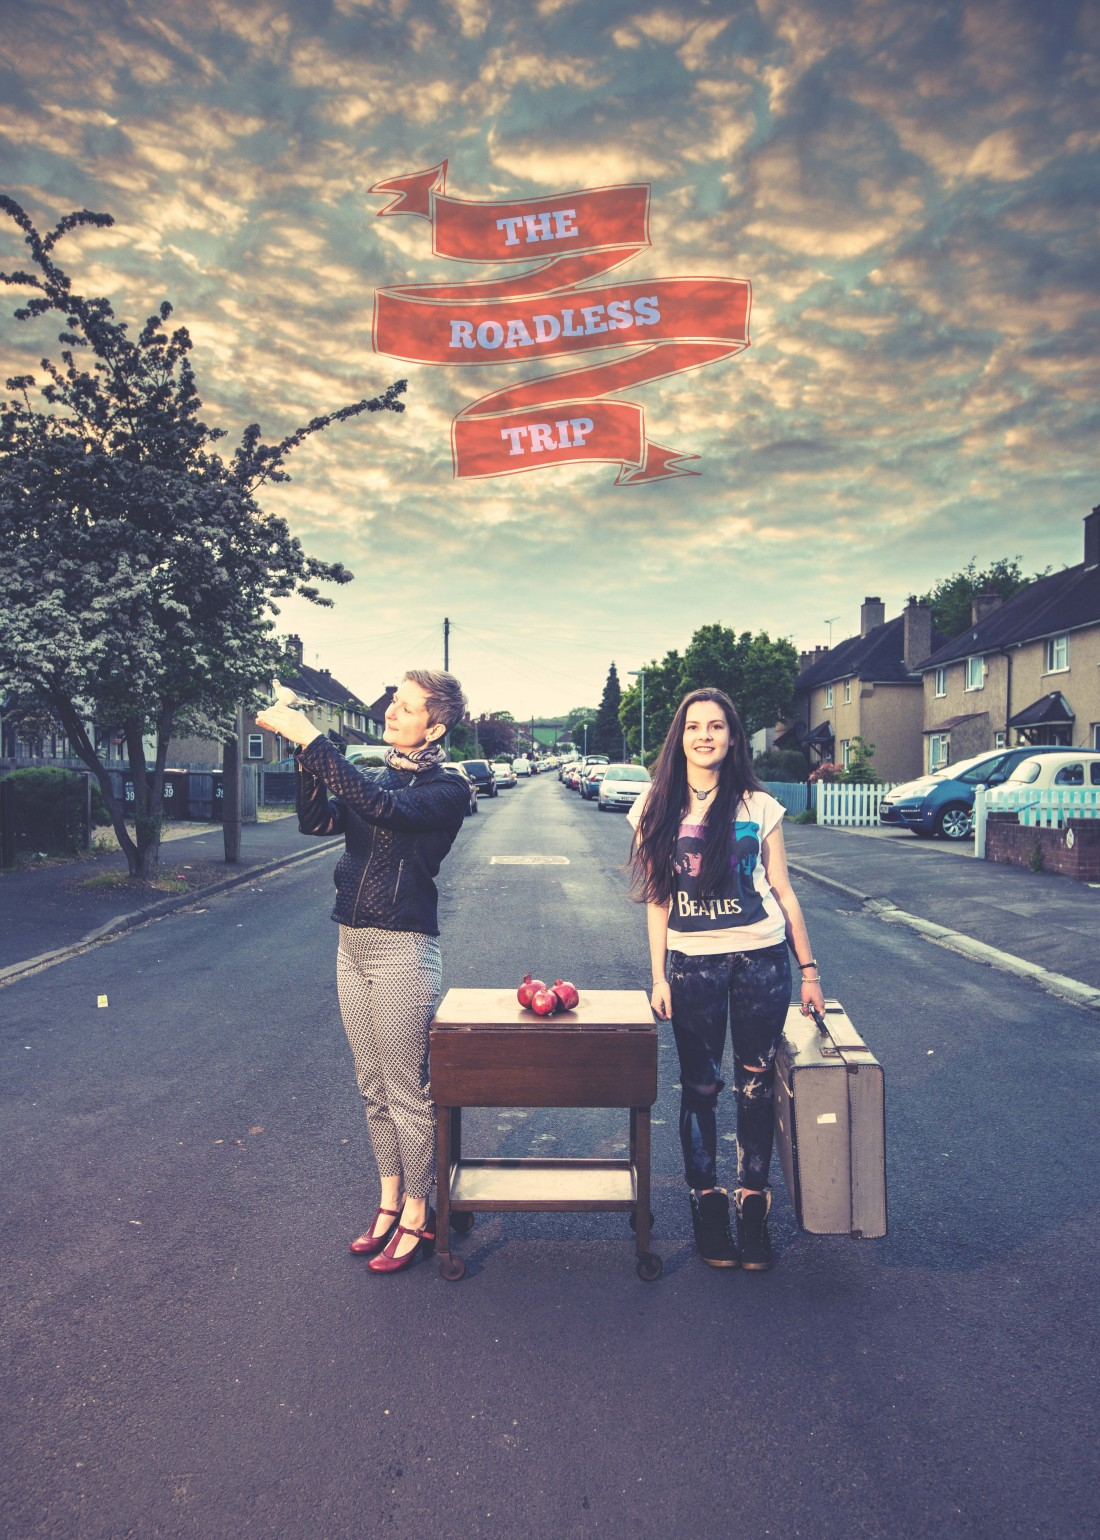 Sarah Woods presents 'The Roadless Trip' at the Nuffield Theatre in Lancaster on the 5 November 2015.